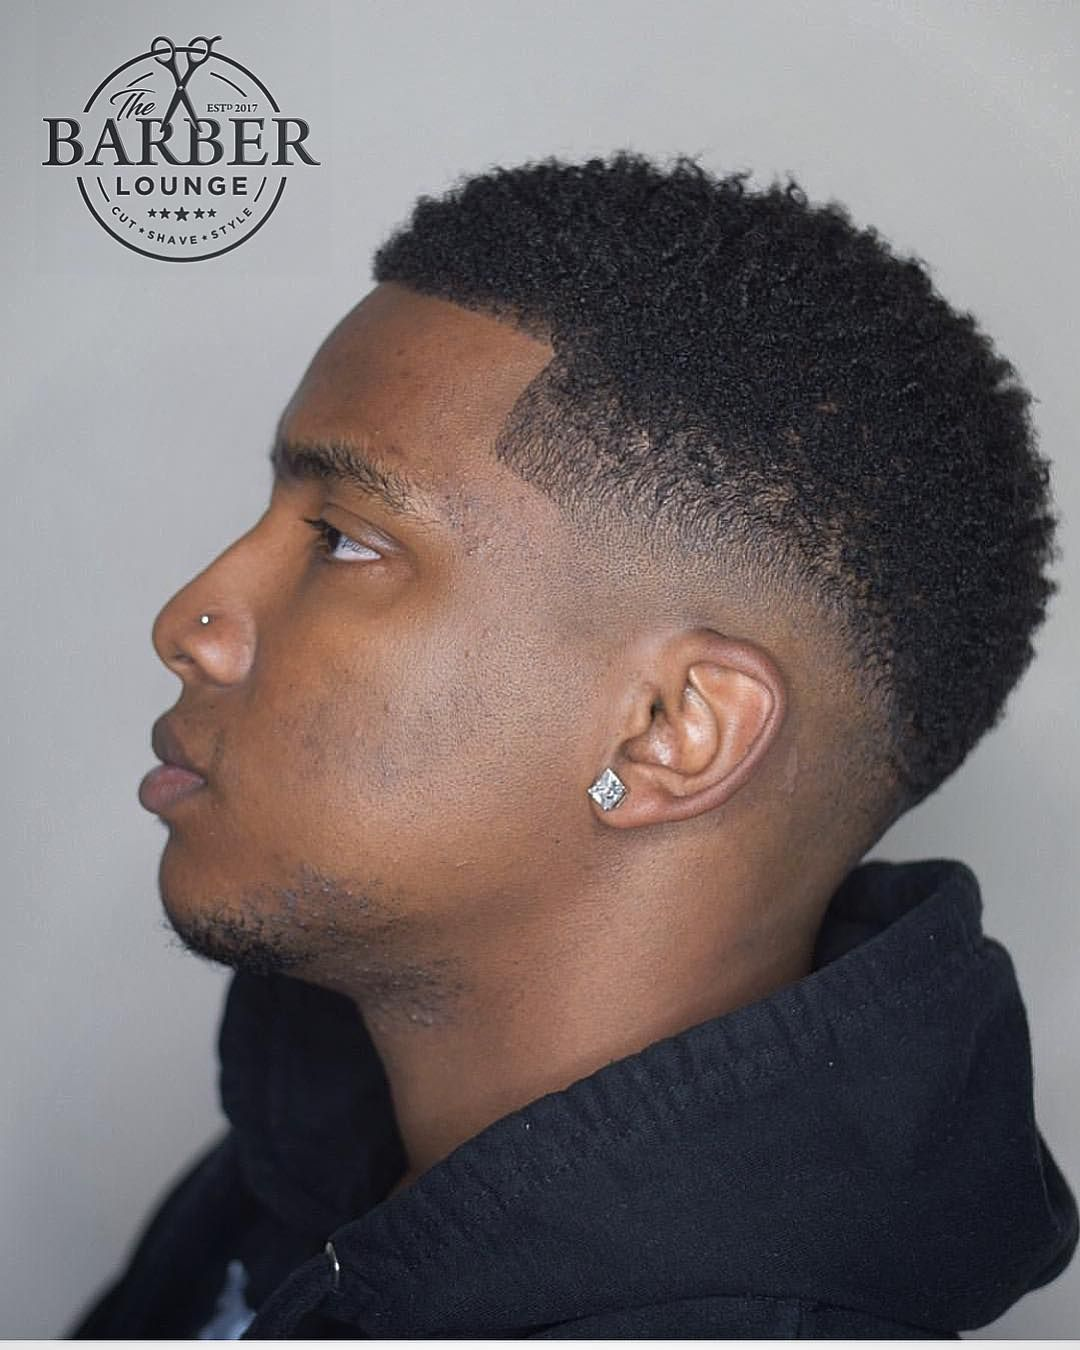 New The 10 Best Hairstyles With Pictures Haircut By Zonazooo Barbershop Thebarberloungetucson 1150 N S In 2020 Cool Hairstyles Hair Styles Mens Hairstyles